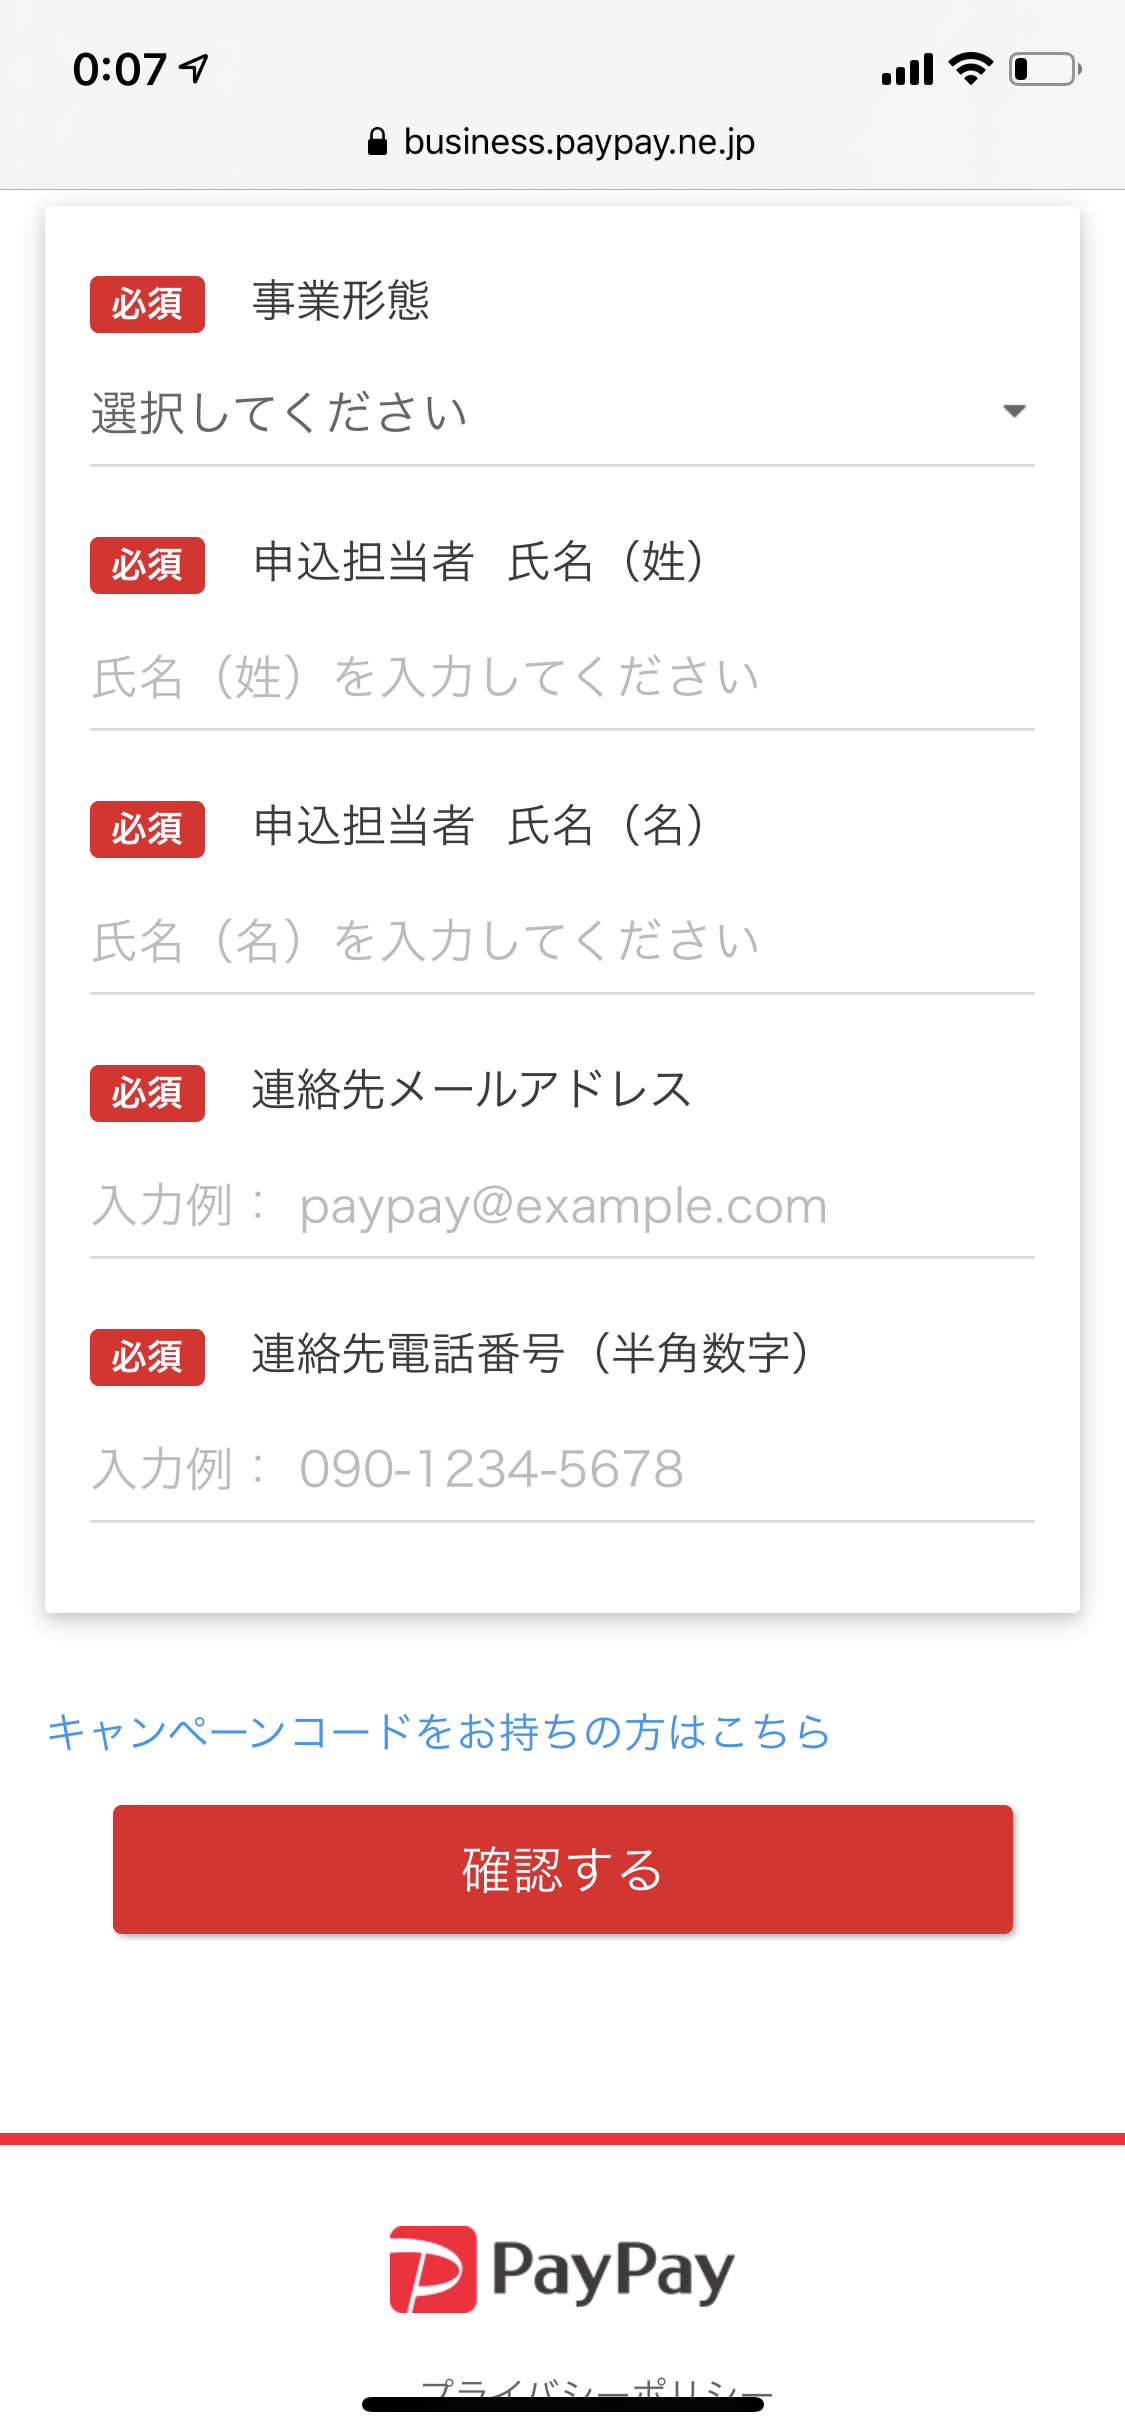 PayPay申し込み画面